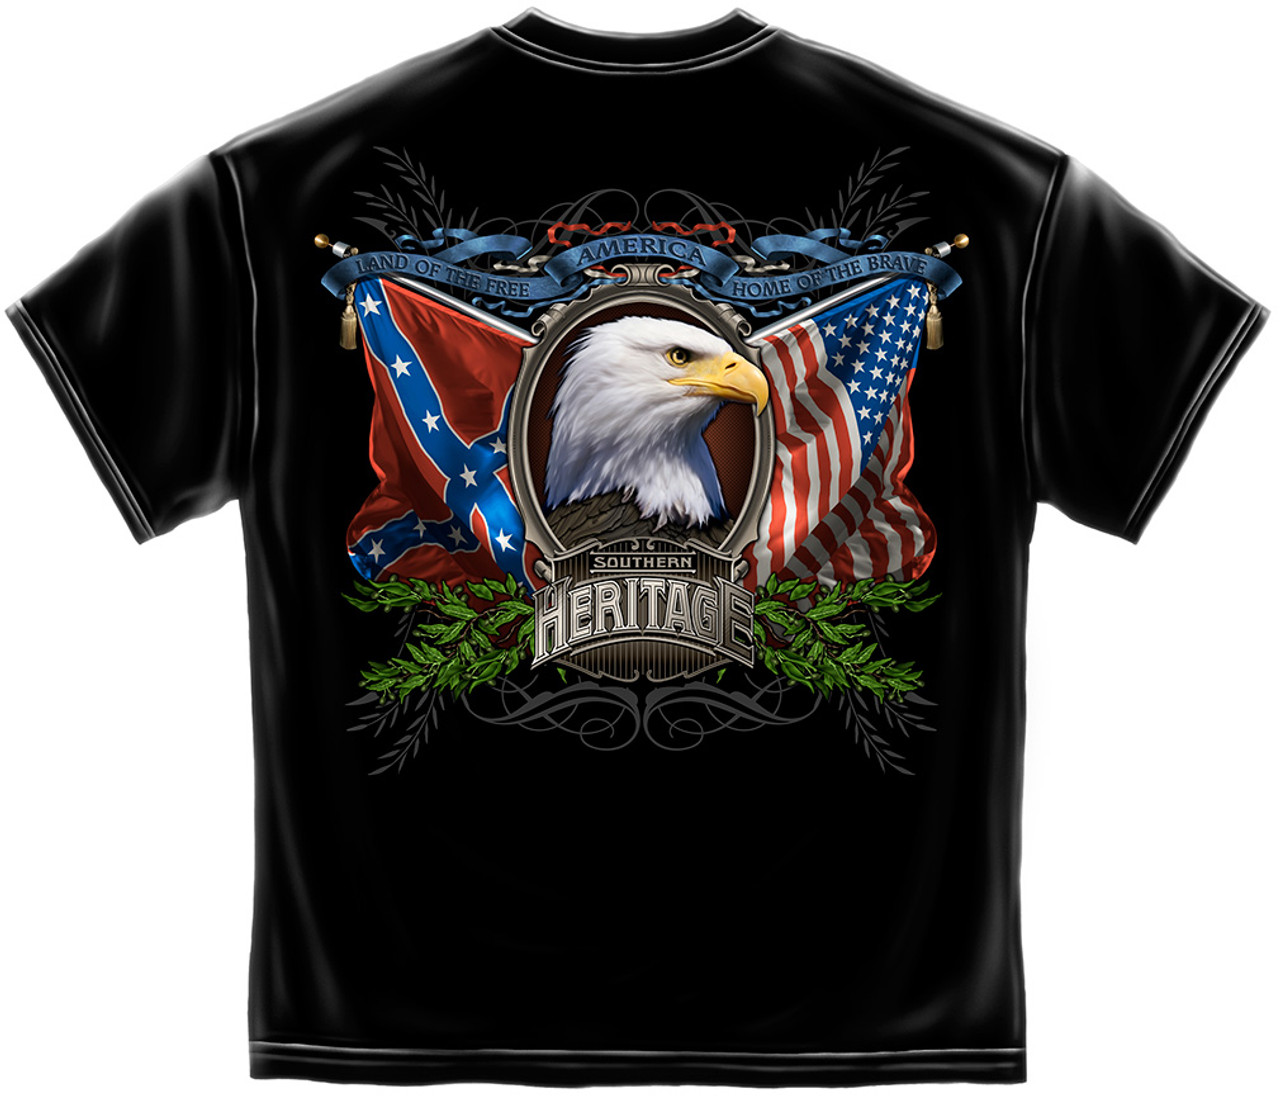 (TRENDY-NEW-SOUTHERN-HERITAGE & LAND-OF-THE-FREE,NICE-PREMIUM-GRAPHIC-PRINTED-PREMIUM-DOUBLE-SIDED-TEES:)